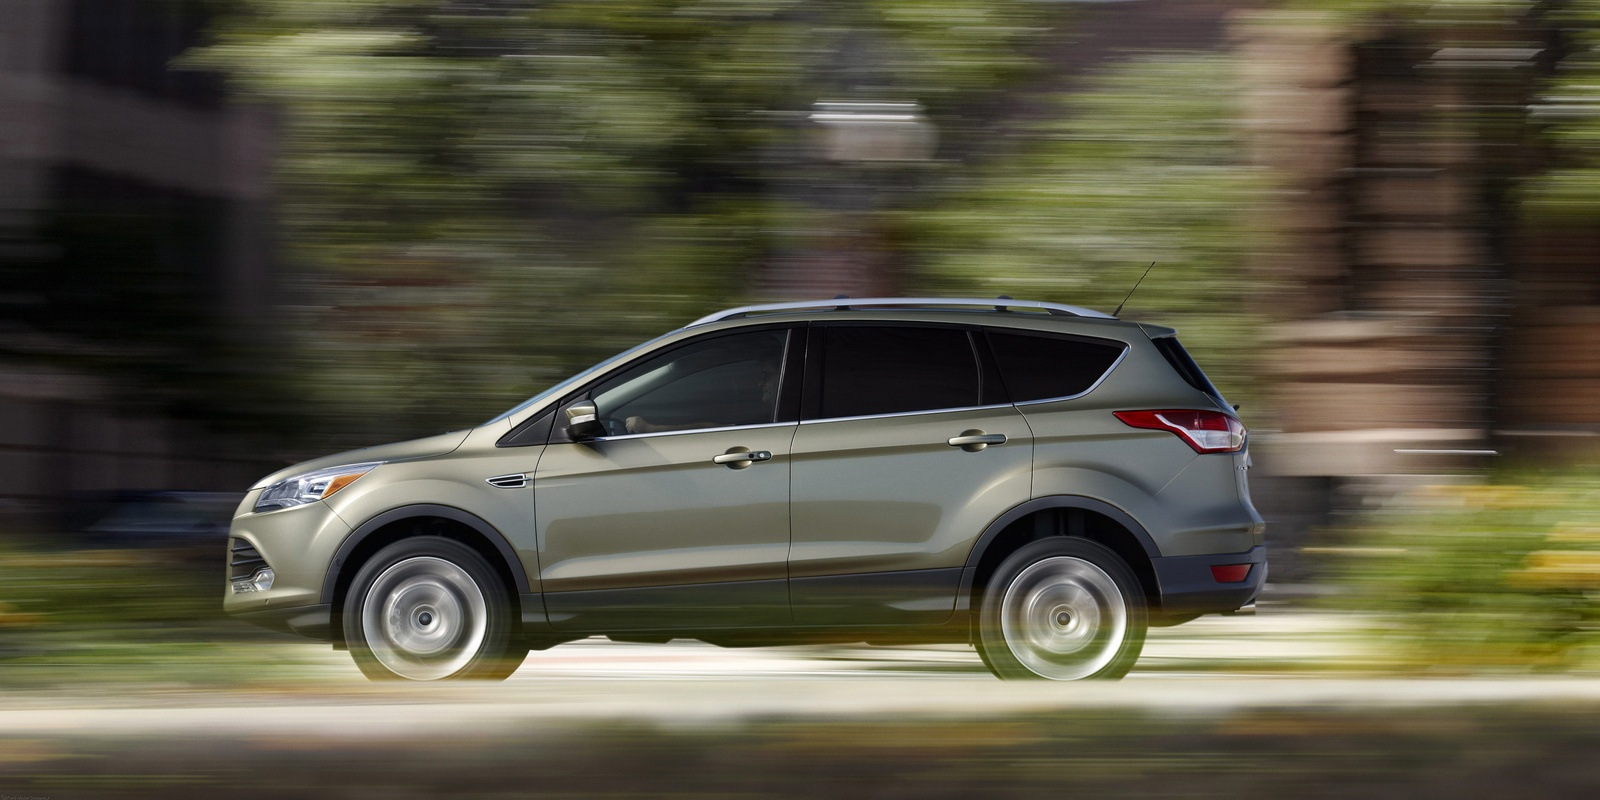 2013 Ford Escape, Profile image from Ford, look_and_feel, manufacturer, exterior